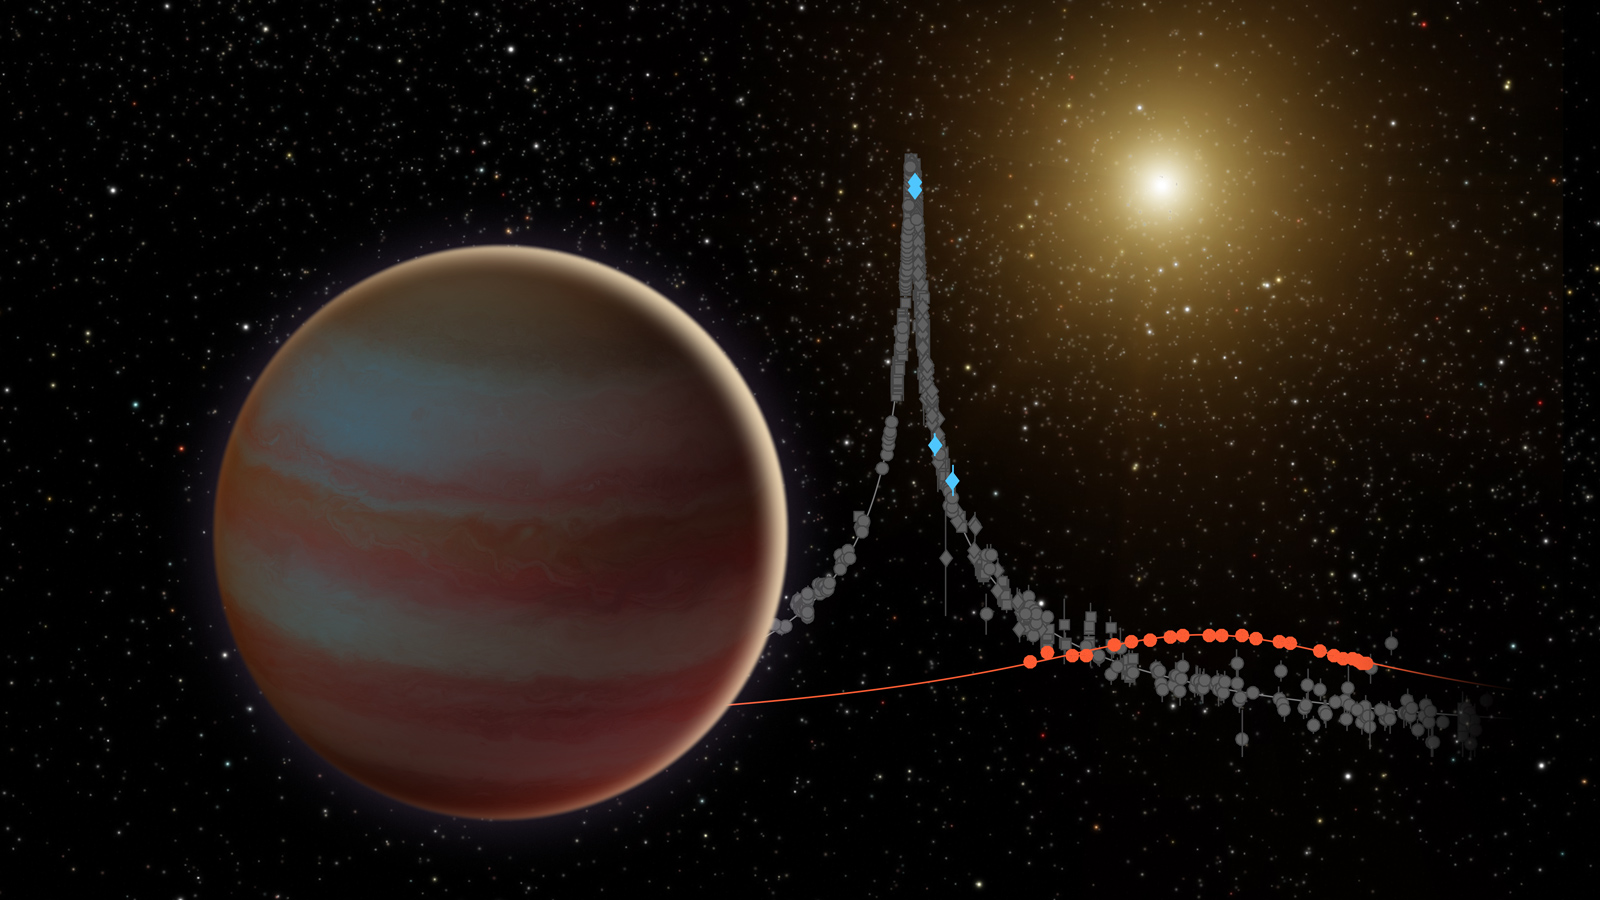 Nasa space telescopes pinpoint elusive brown dwarf nasa illustration depicts a newly discovered brown dwarf ccuart Choice Image